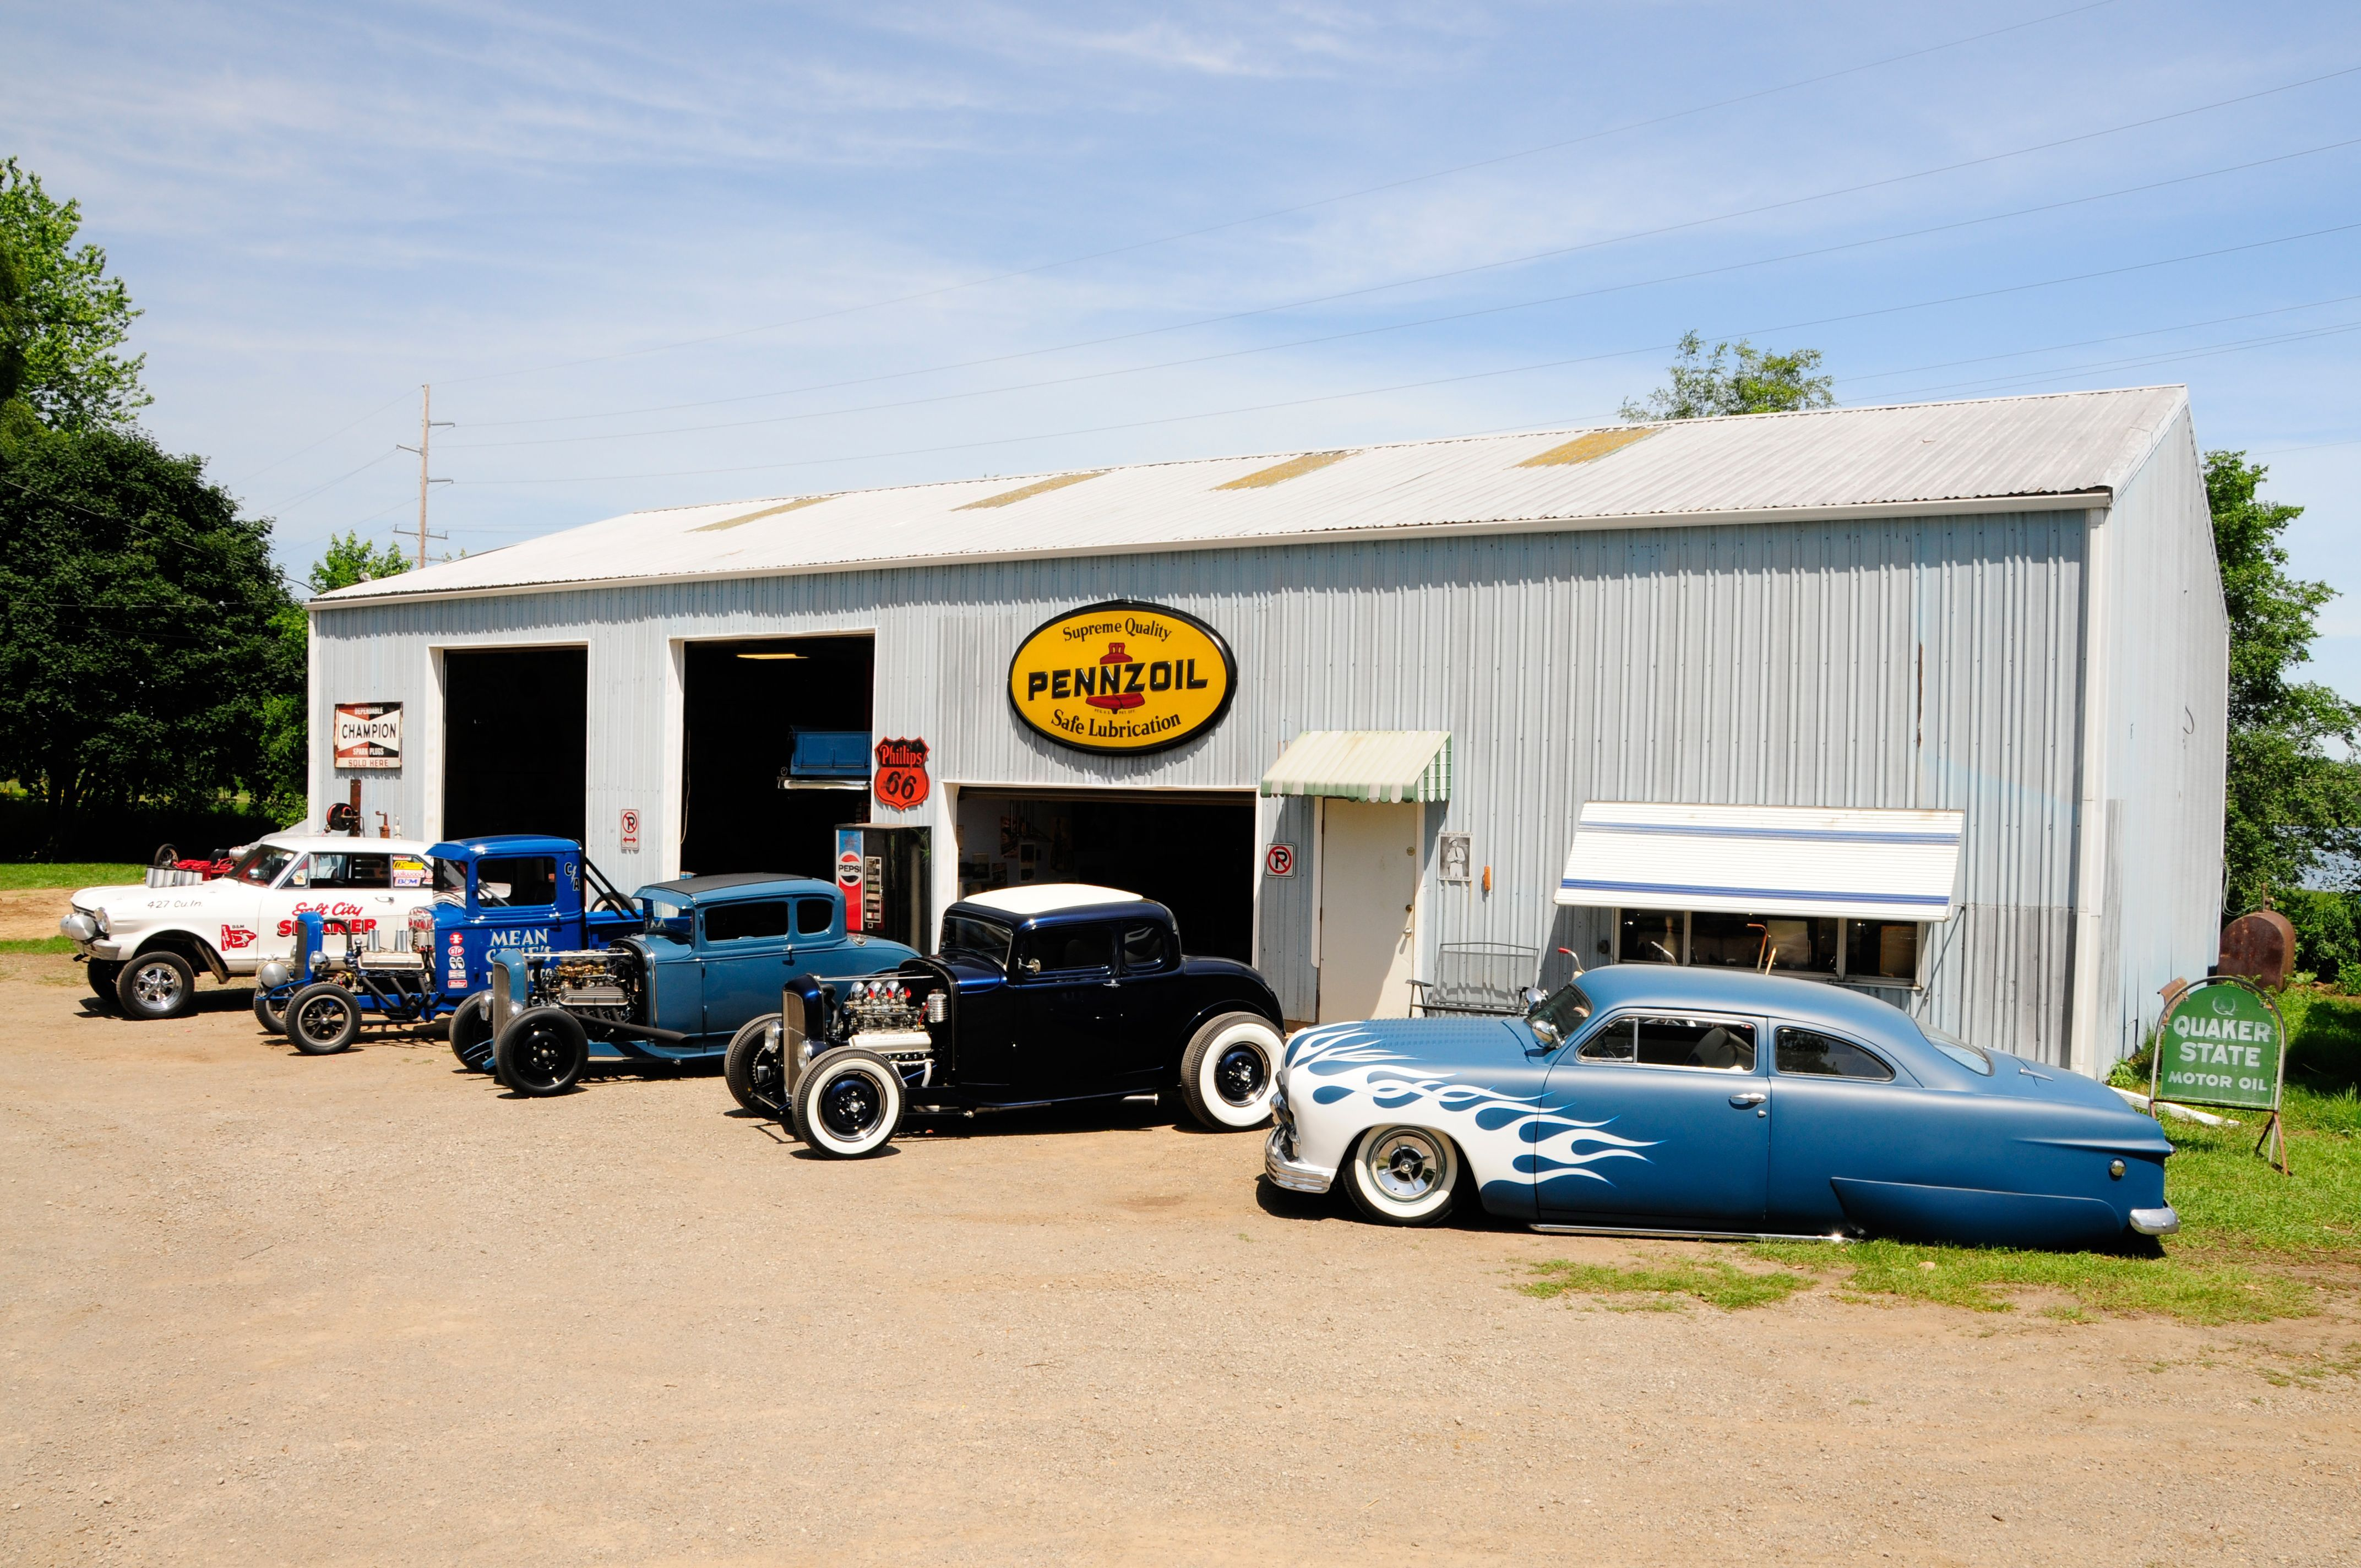 Pin By Jim Ford On Cool Hot Rods Traditional Hot Rod Hot Rods Hot